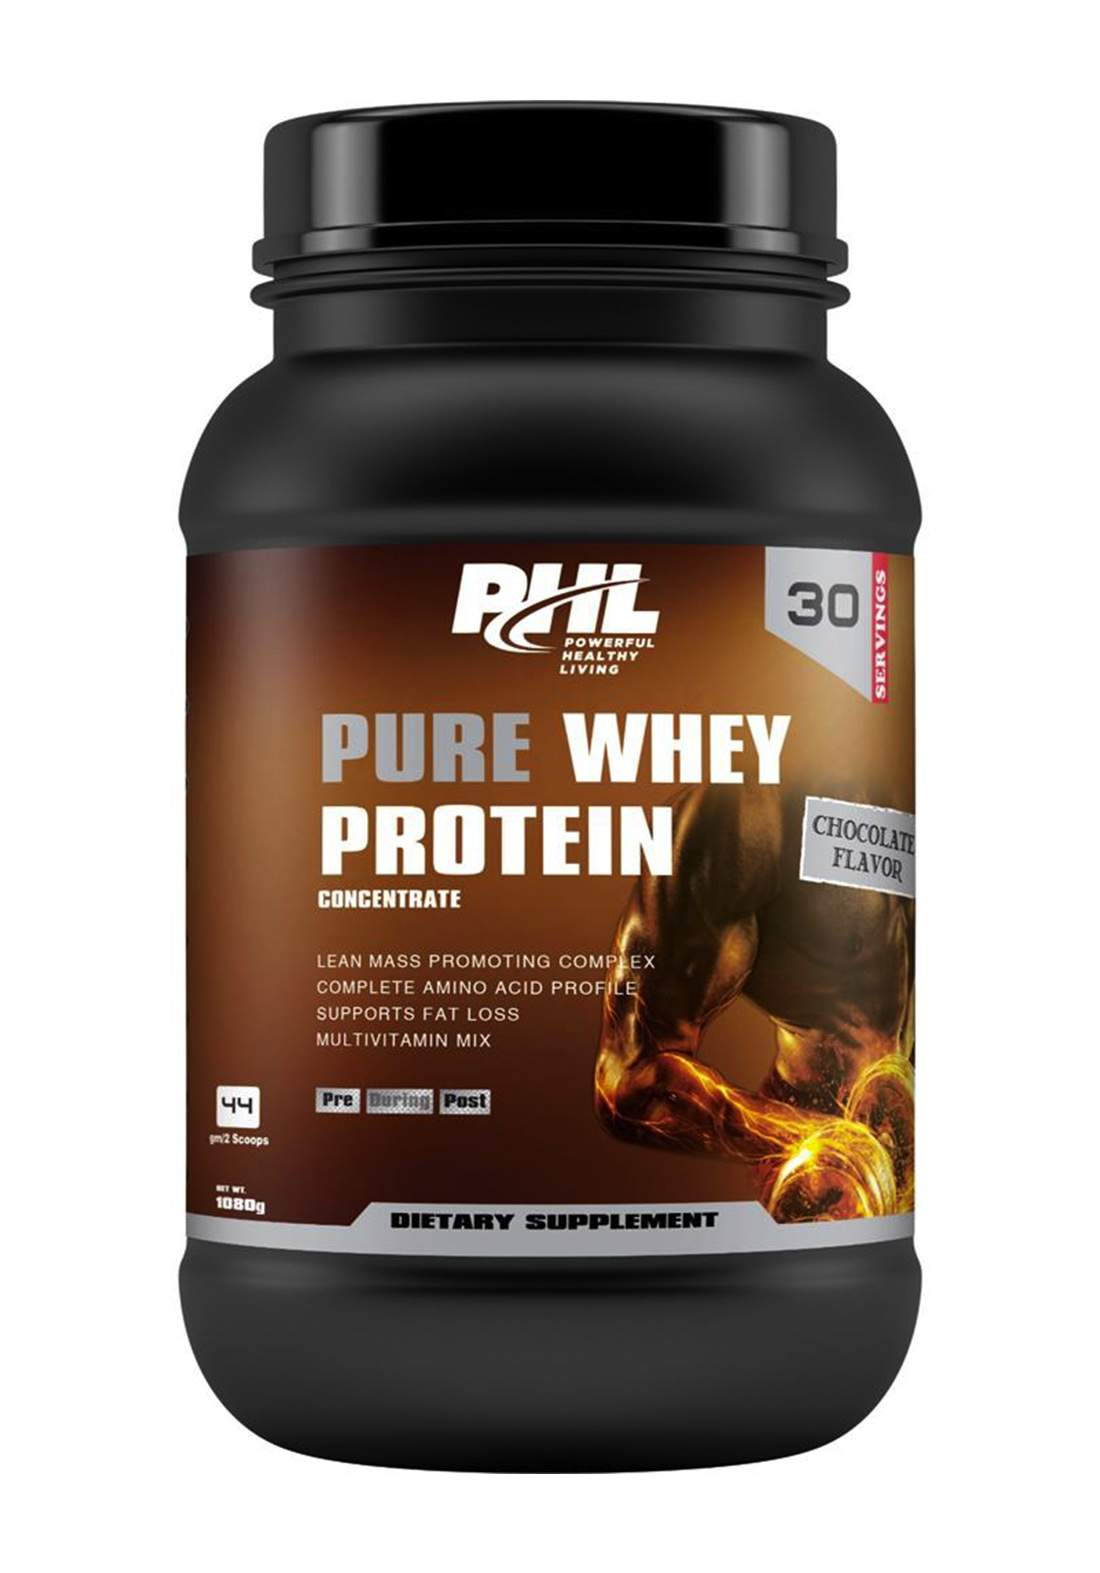 Phl Pure Whey Protein Chocolate 30 Servings 1080 g بروتين مكمل غذائي